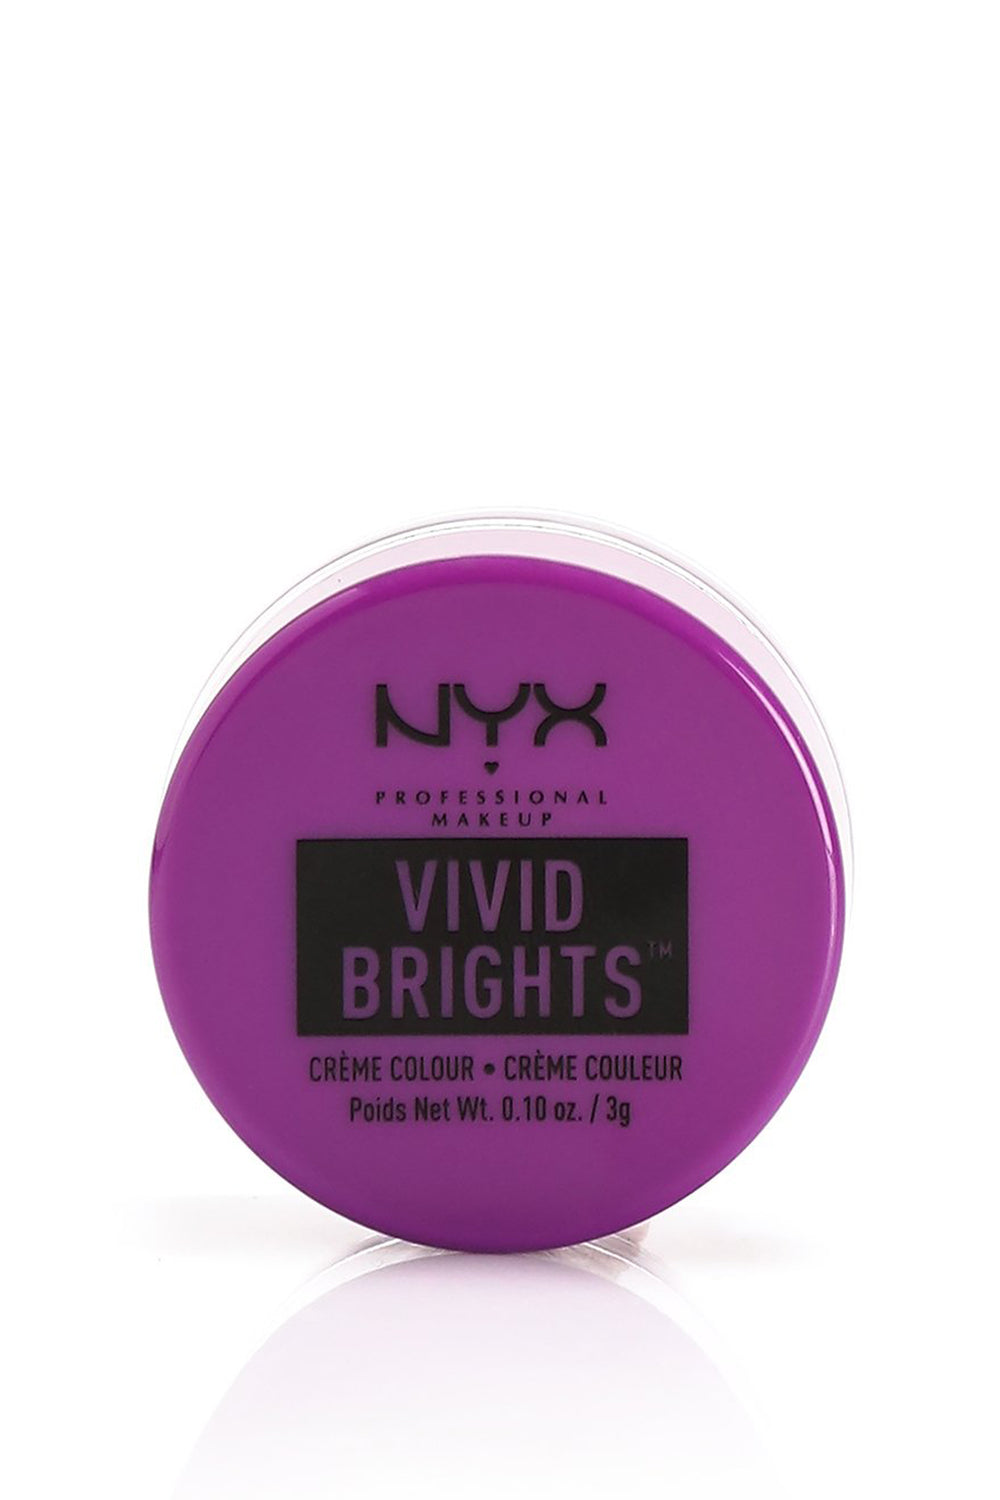 NYX Vivid Brights Creme Colour - Rebellious Edge